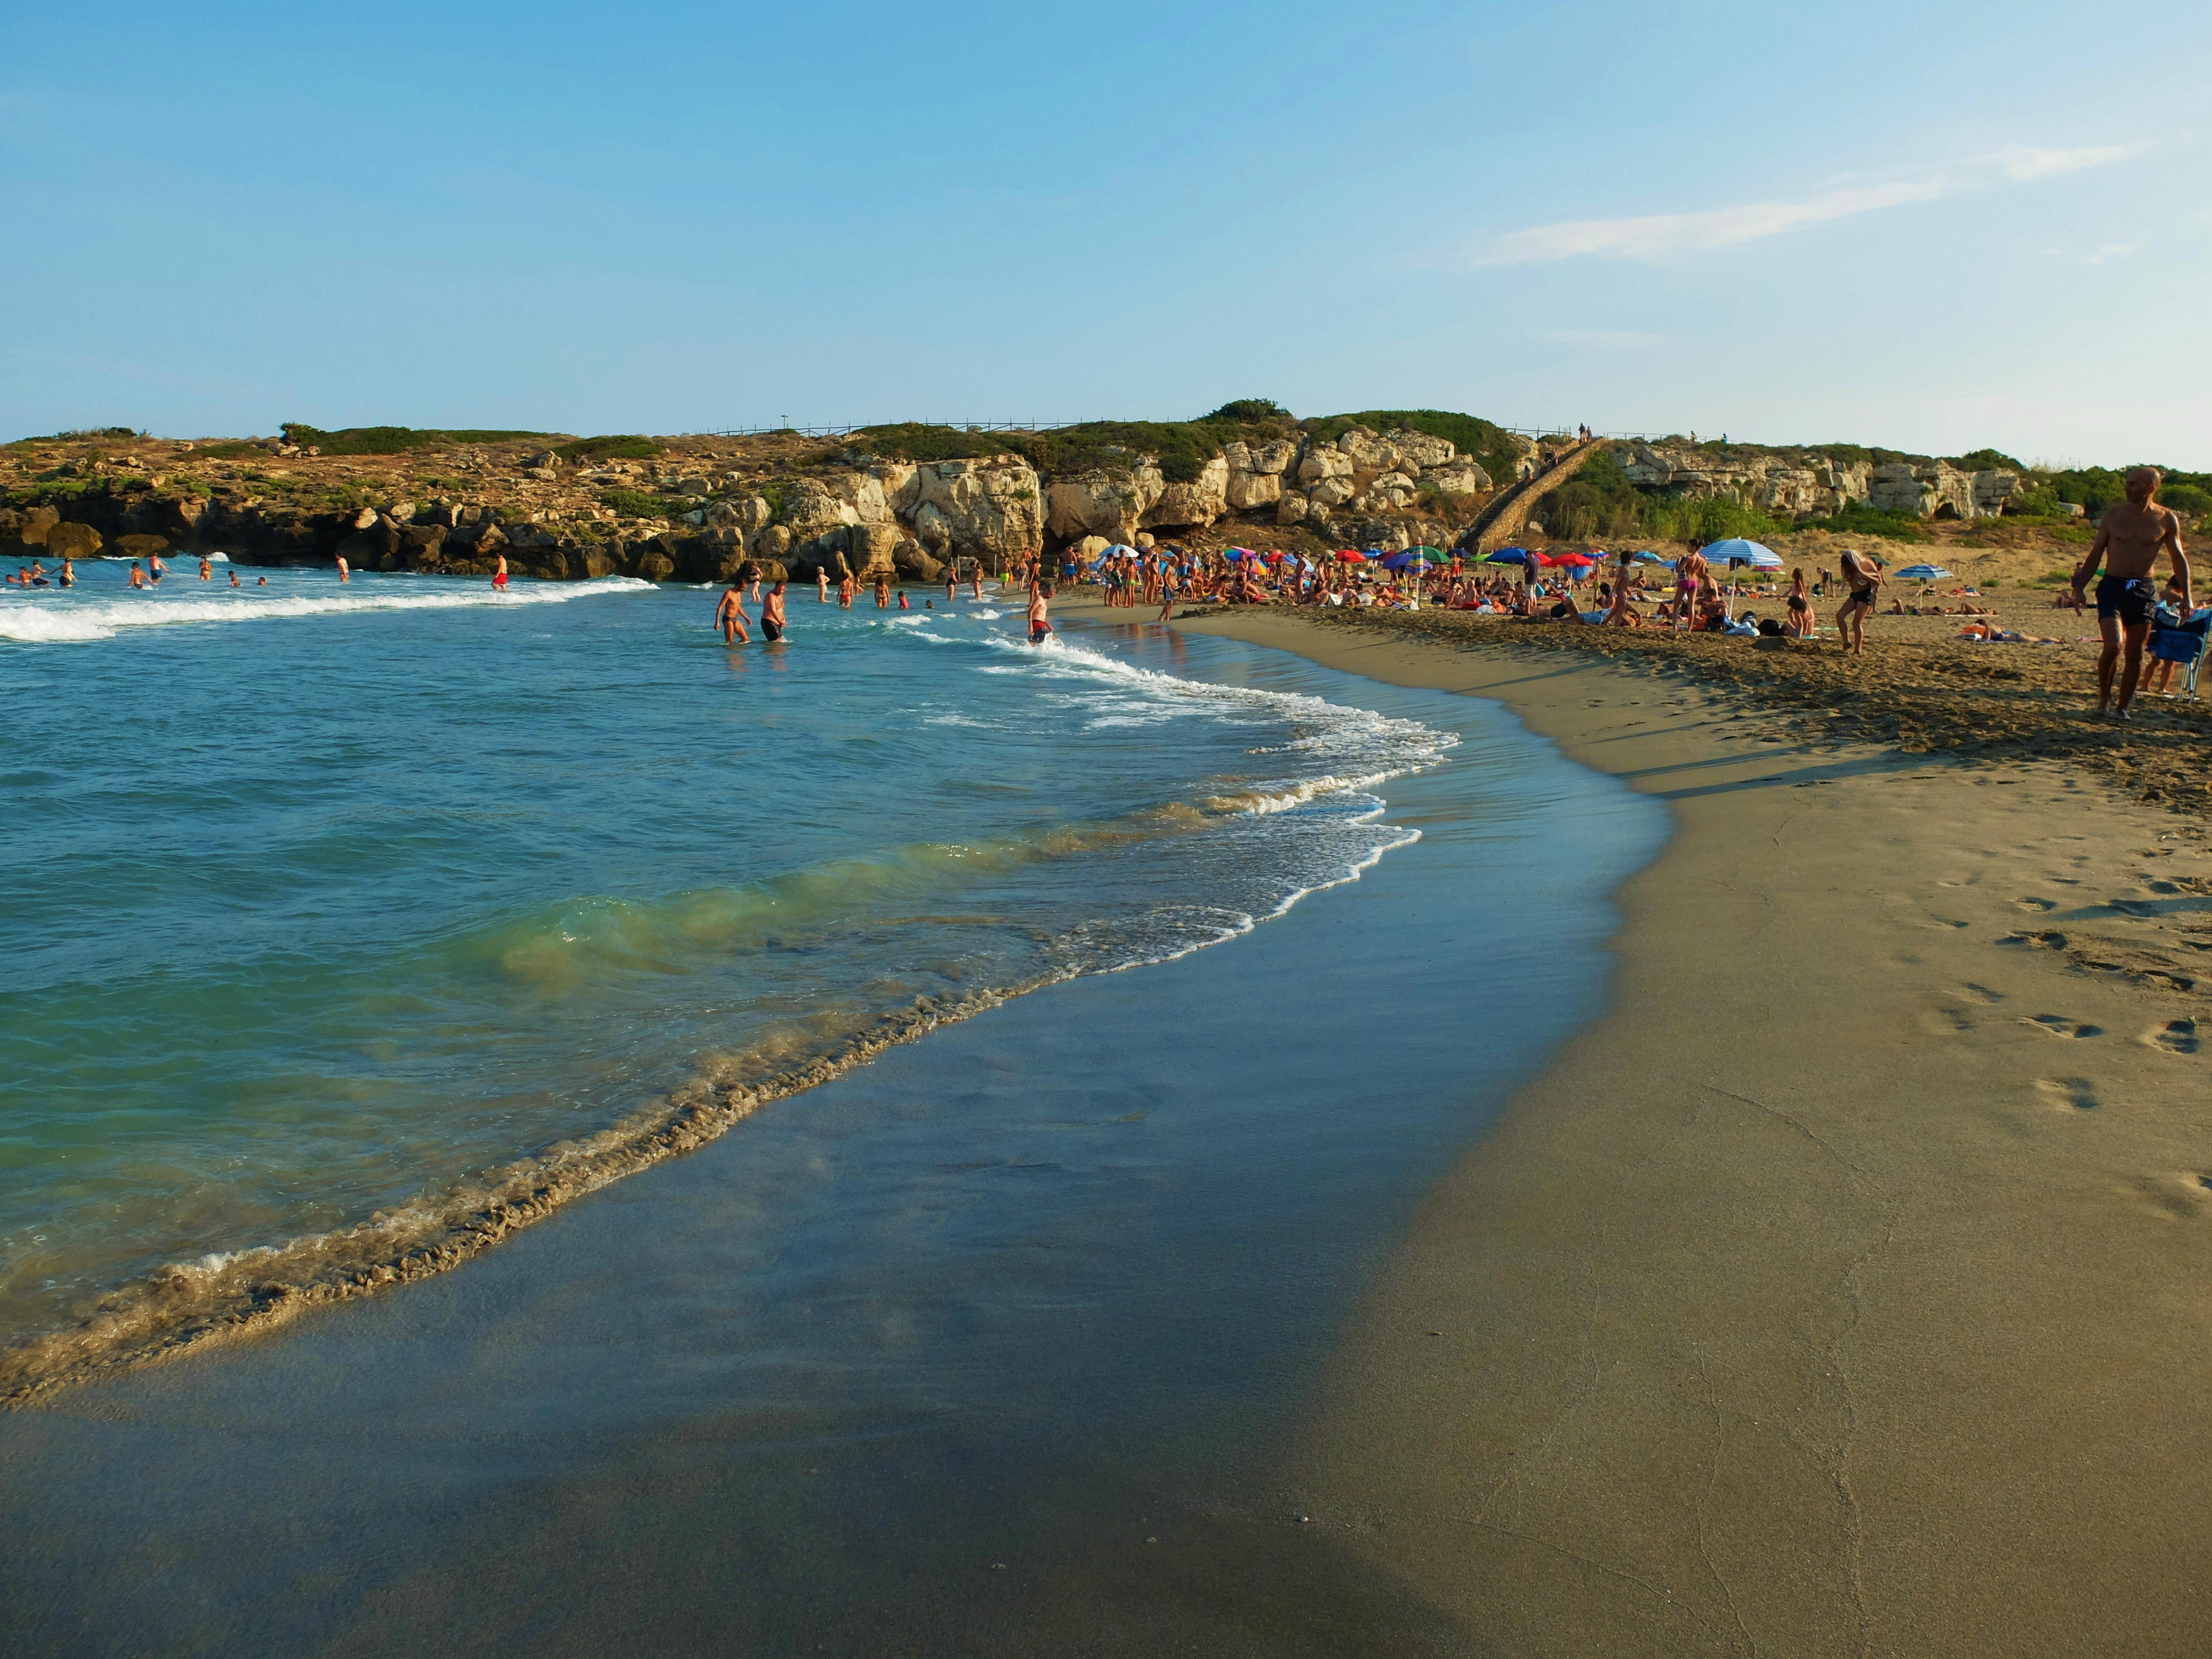 This guide to South-East Sicily's top ten beaches includes something for everyone - so whether you're looking for a wild spot of unspoilt coastline, a place to go surfing or windsurfing, or an elegant beach resort with full services - read on!